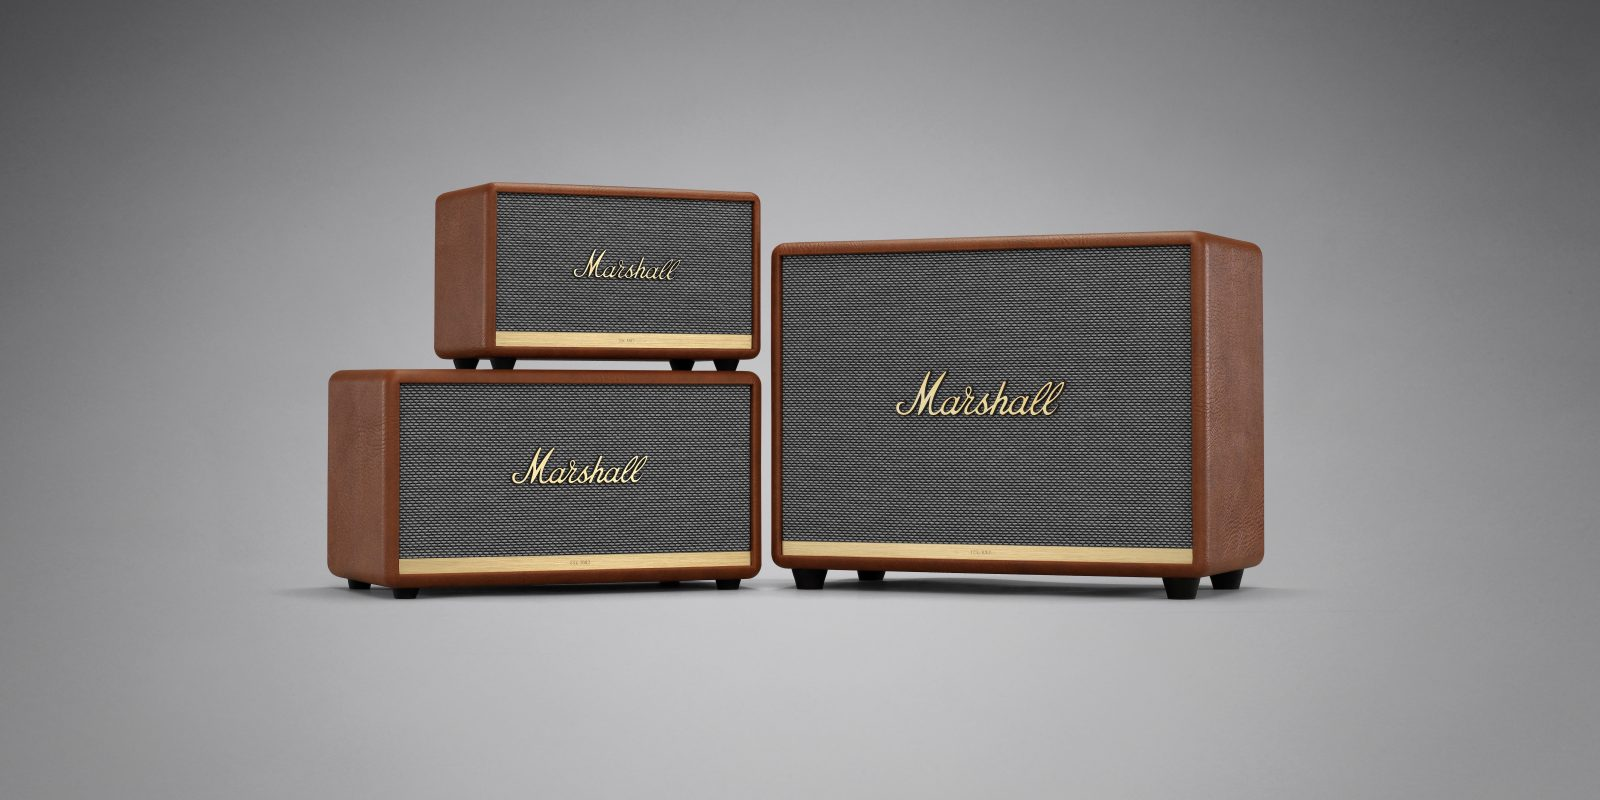 Marshall - 9to5Toys